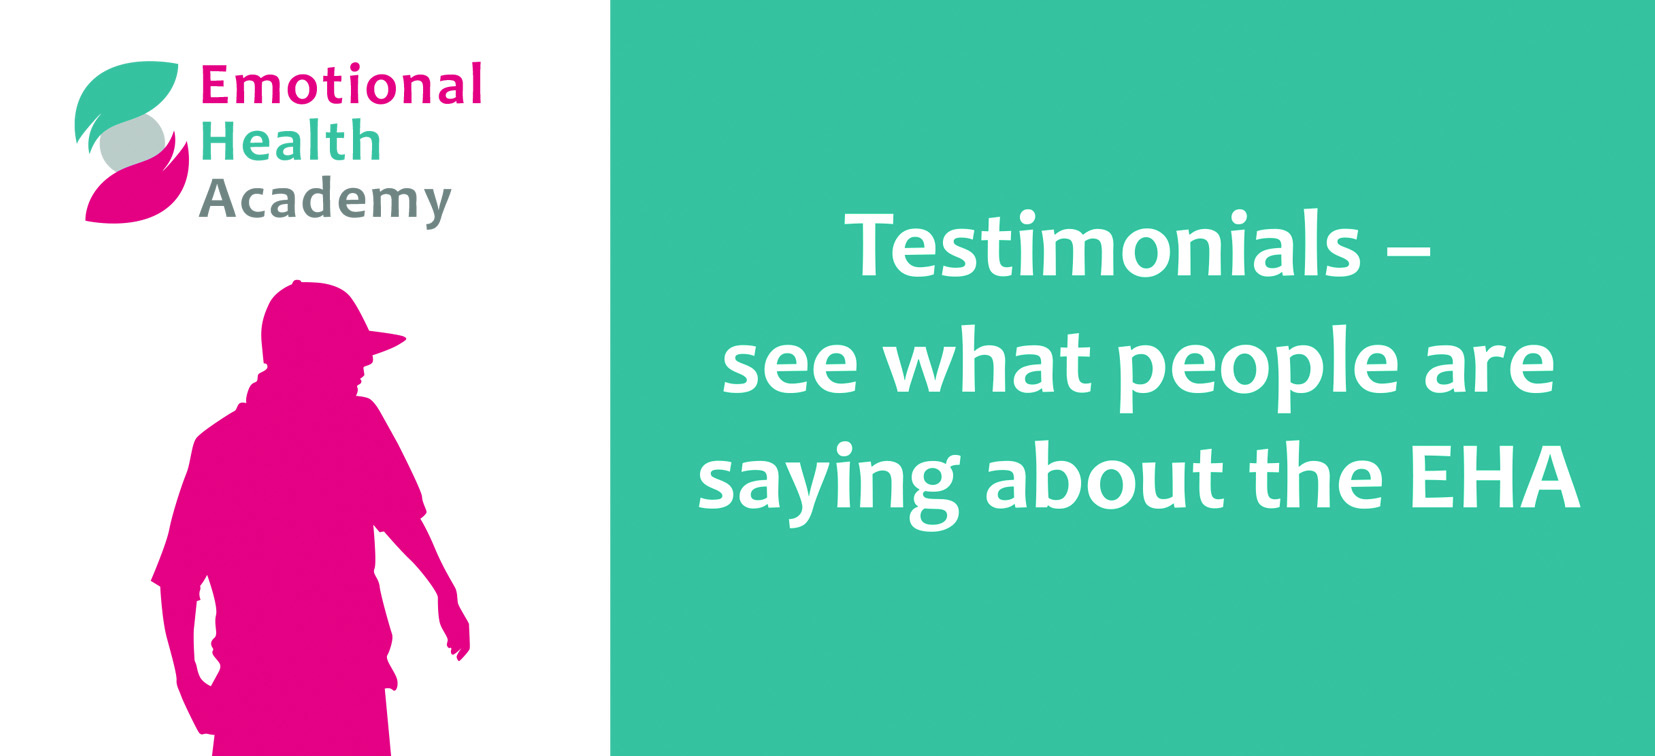 Go to Testimonials - see what people are saying about the EHA